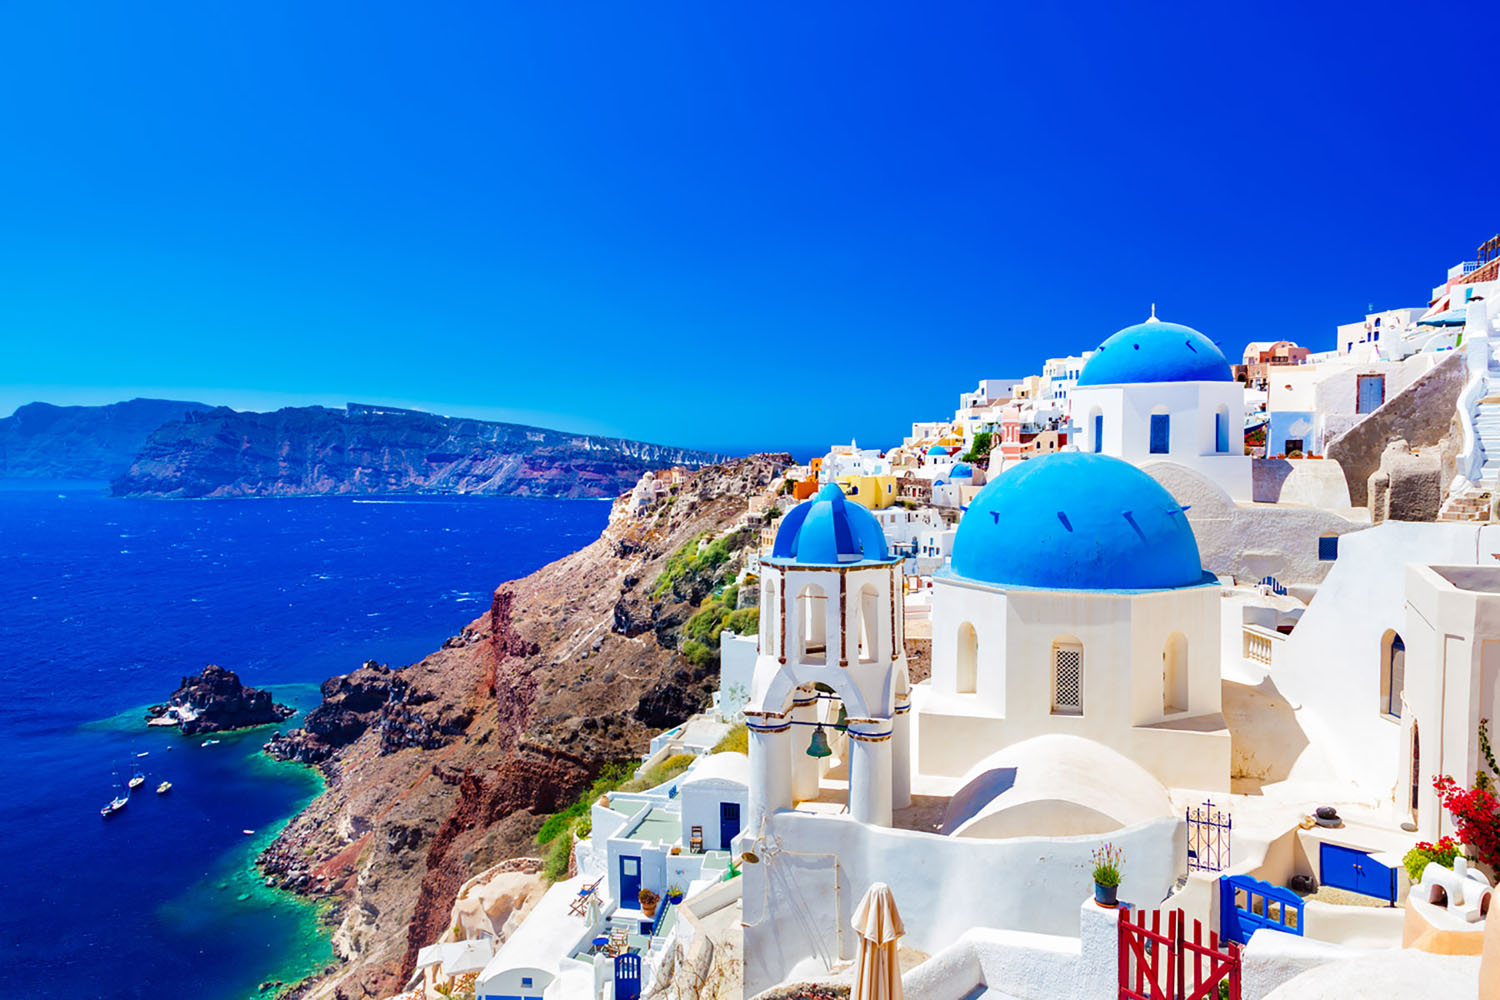 A landscape photo of Santorini, Greece.